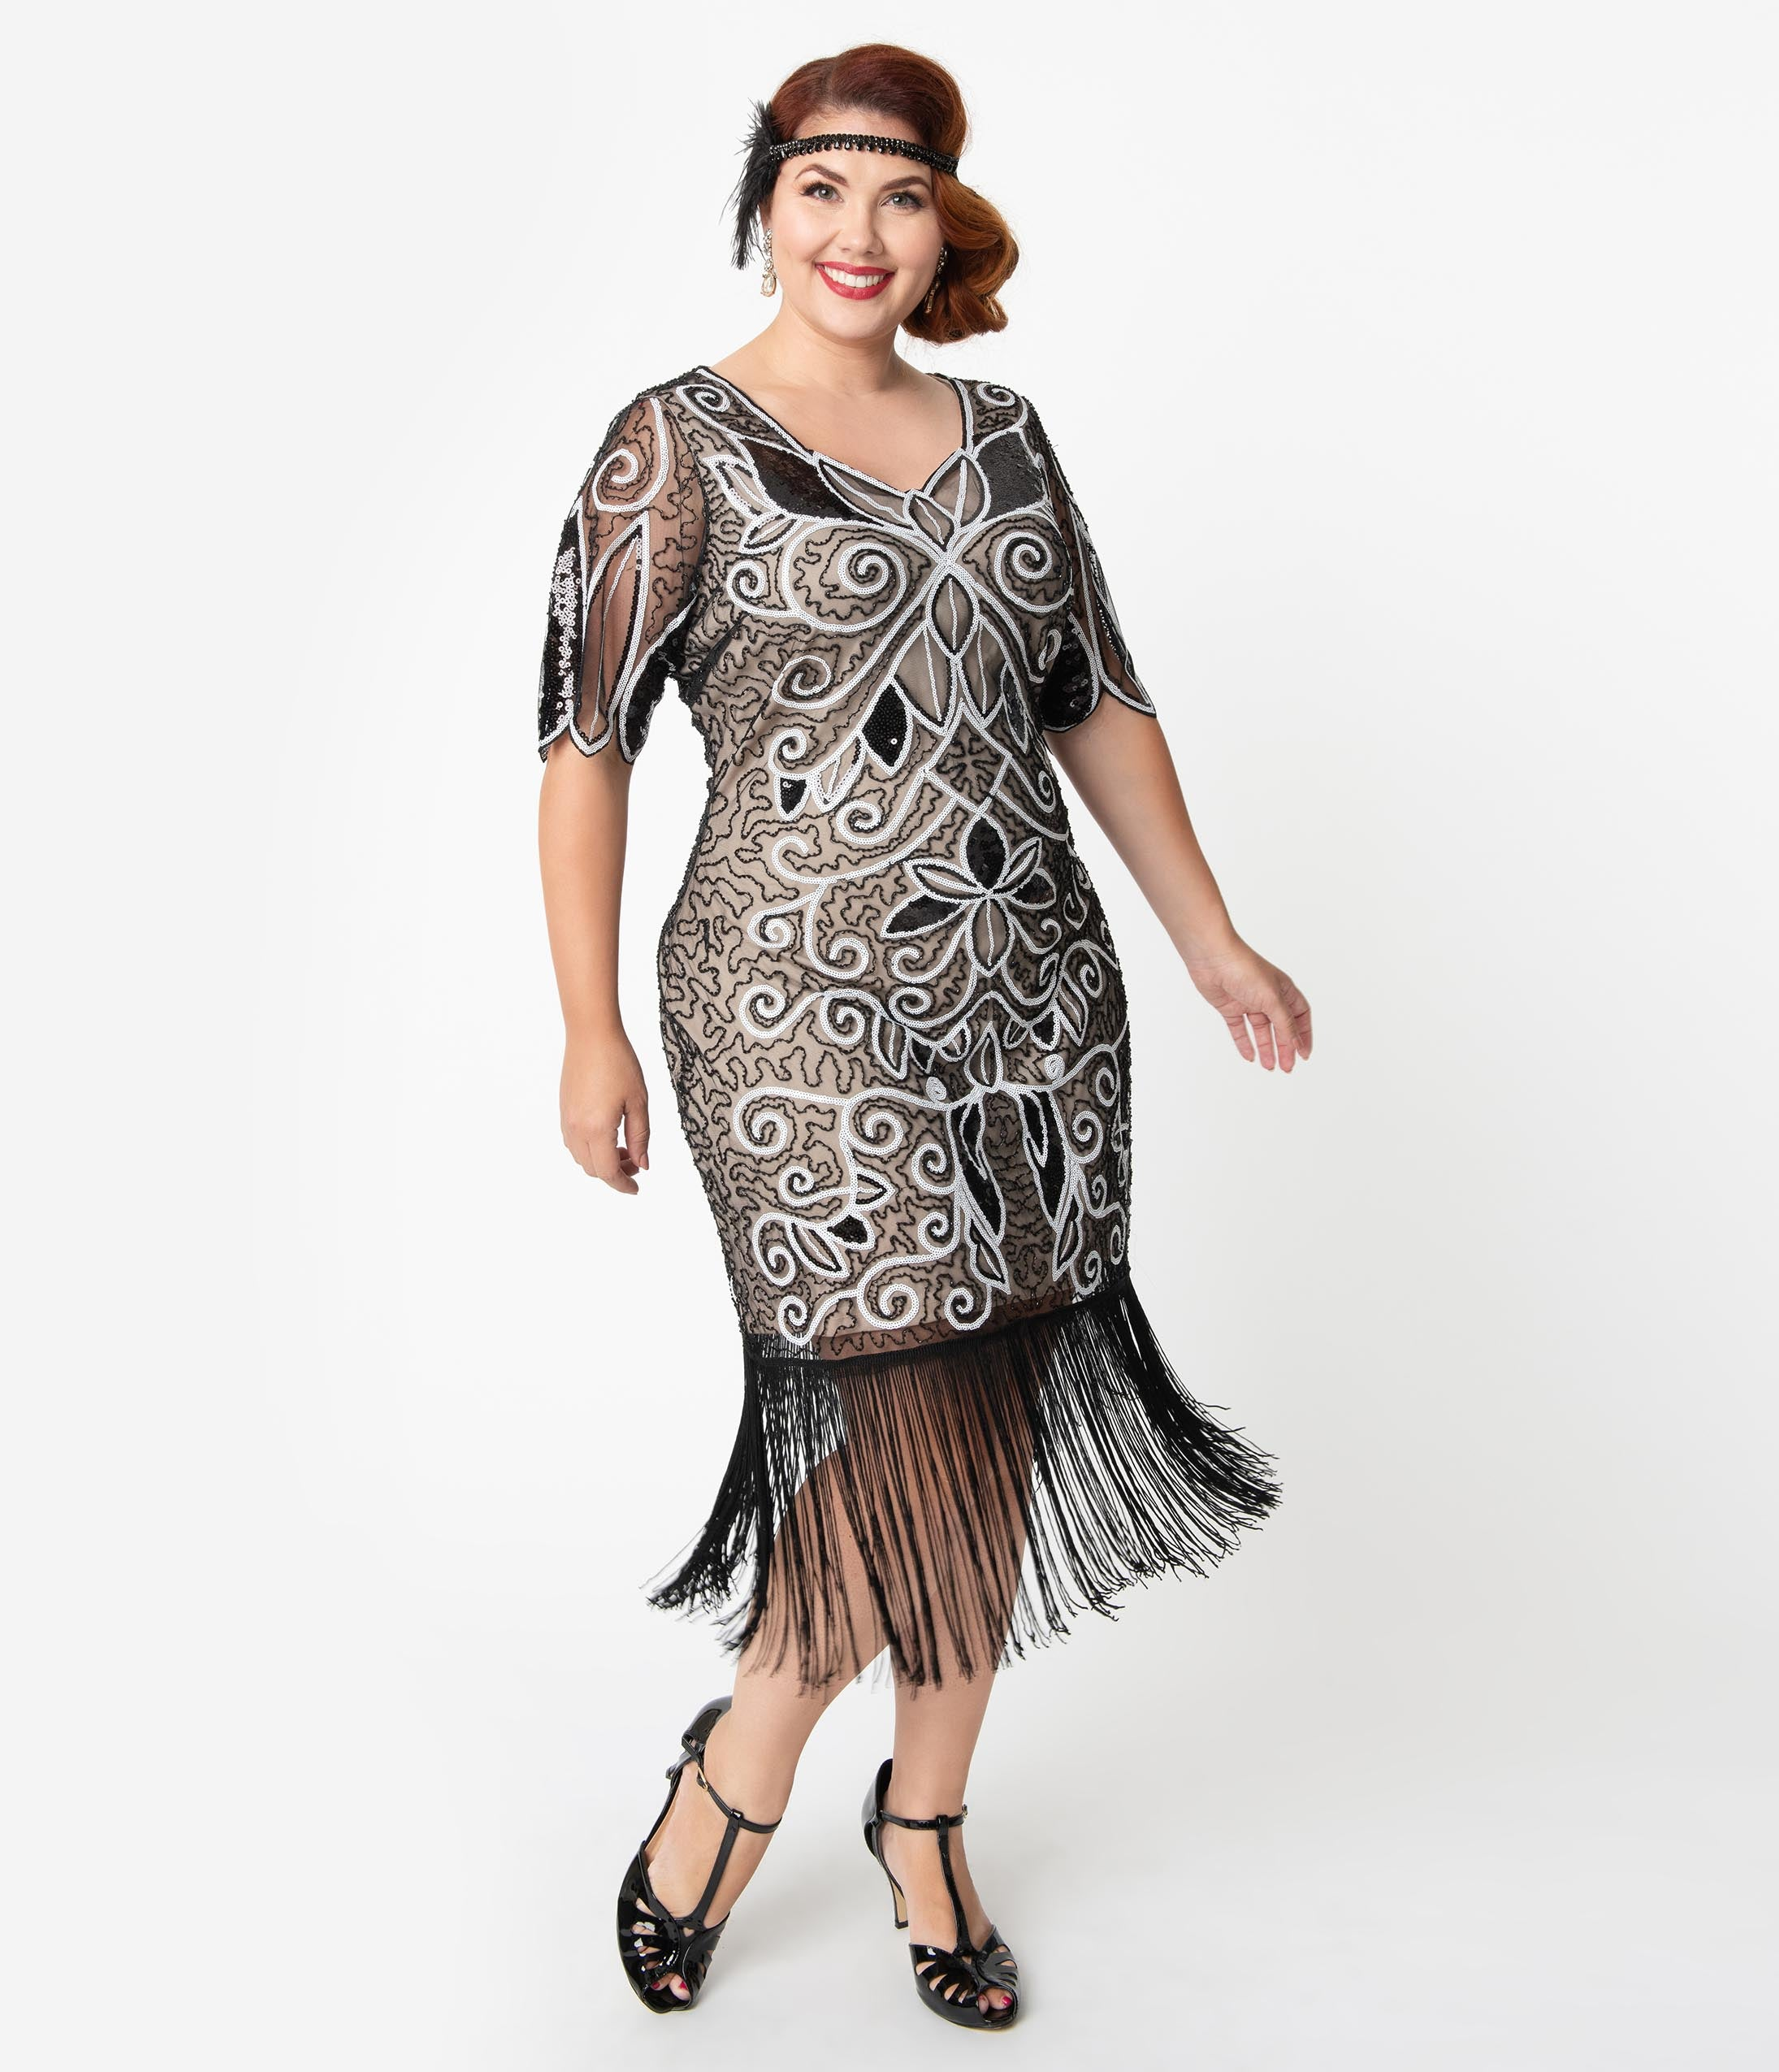 1920s Evening Dresses & Formal Gowns Unique Vintage Plus Size 1920S Style Black  White Sequin Florent Flapper Dress $98.00 AT vintagedancer.com